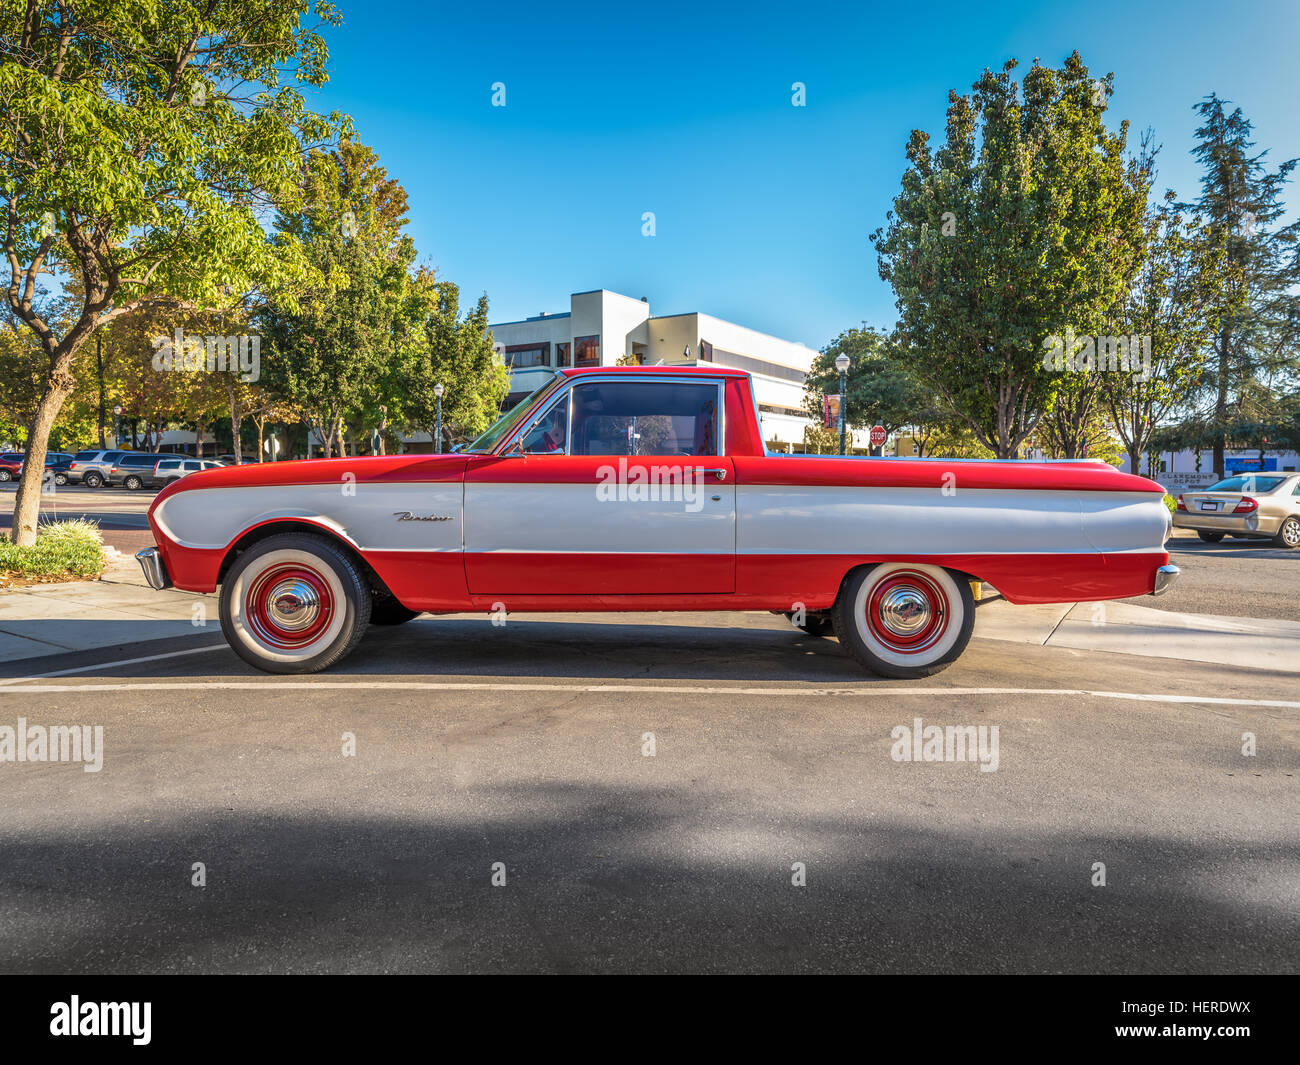 Vintage Red Ford Pickup Truck Stock Photos & Vintage Red